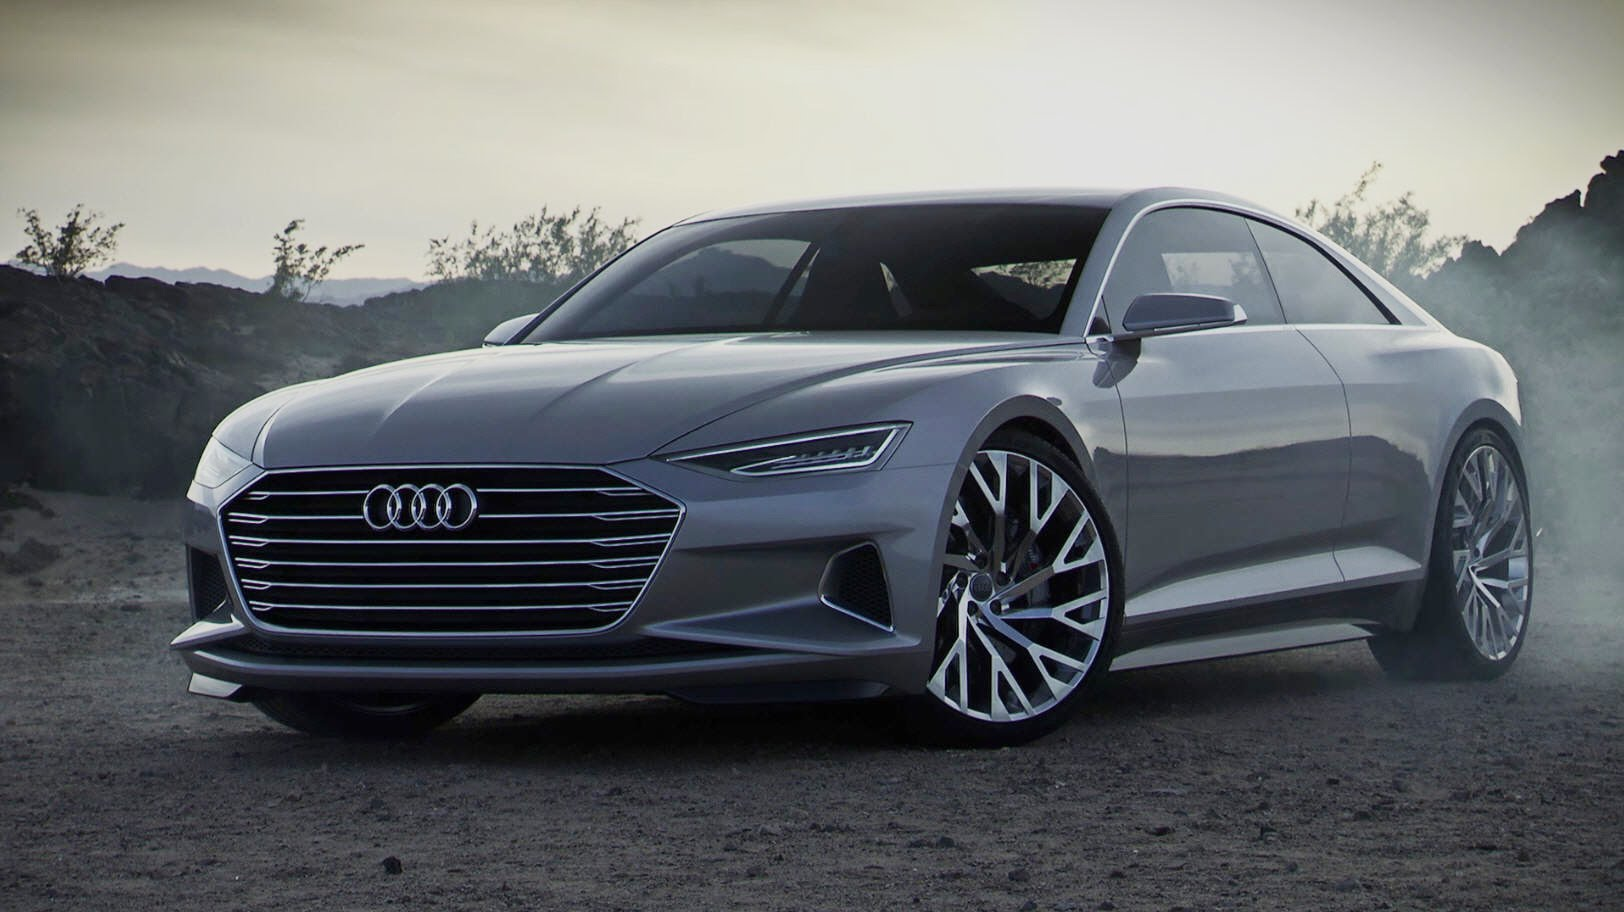 2018 audi s8 will have 580 hp new a8 w12 coming with more. Black Bedroom Furniture Sets. Home Design Ideas